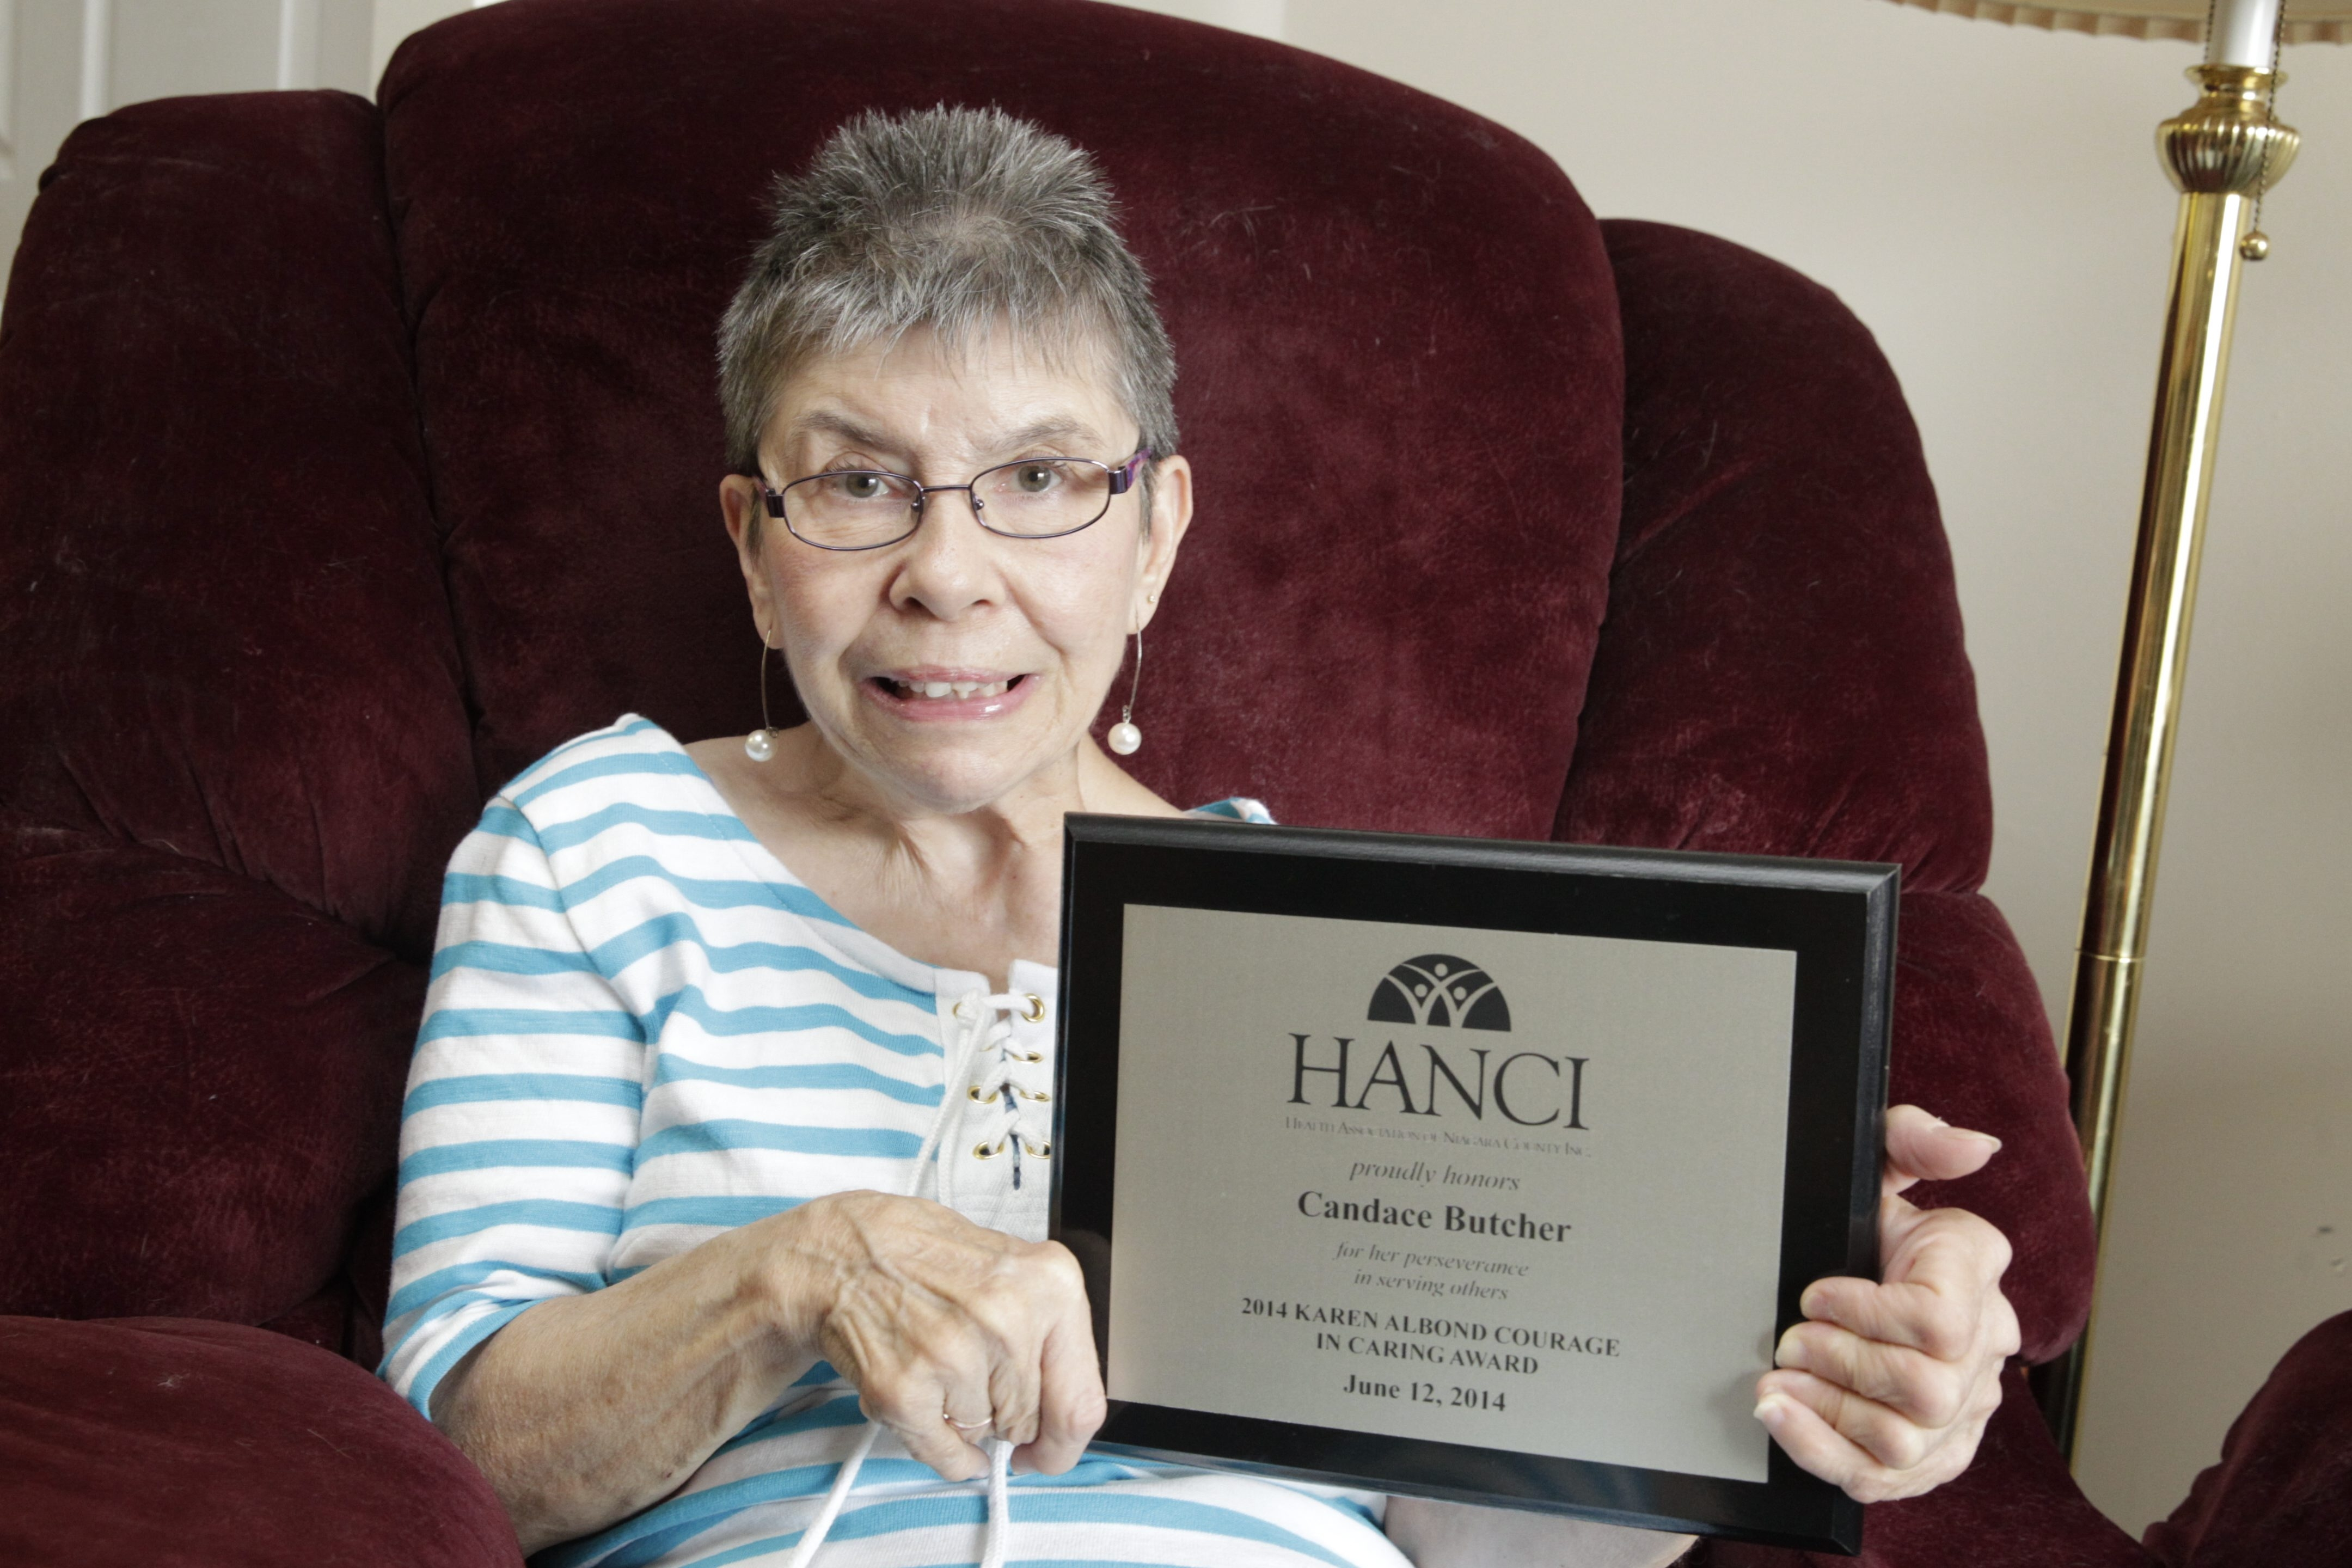 Candace Butcher, who has been a volunteer helping others with cerebral palsy despite her own challenges, displays the award she recently won for her service.